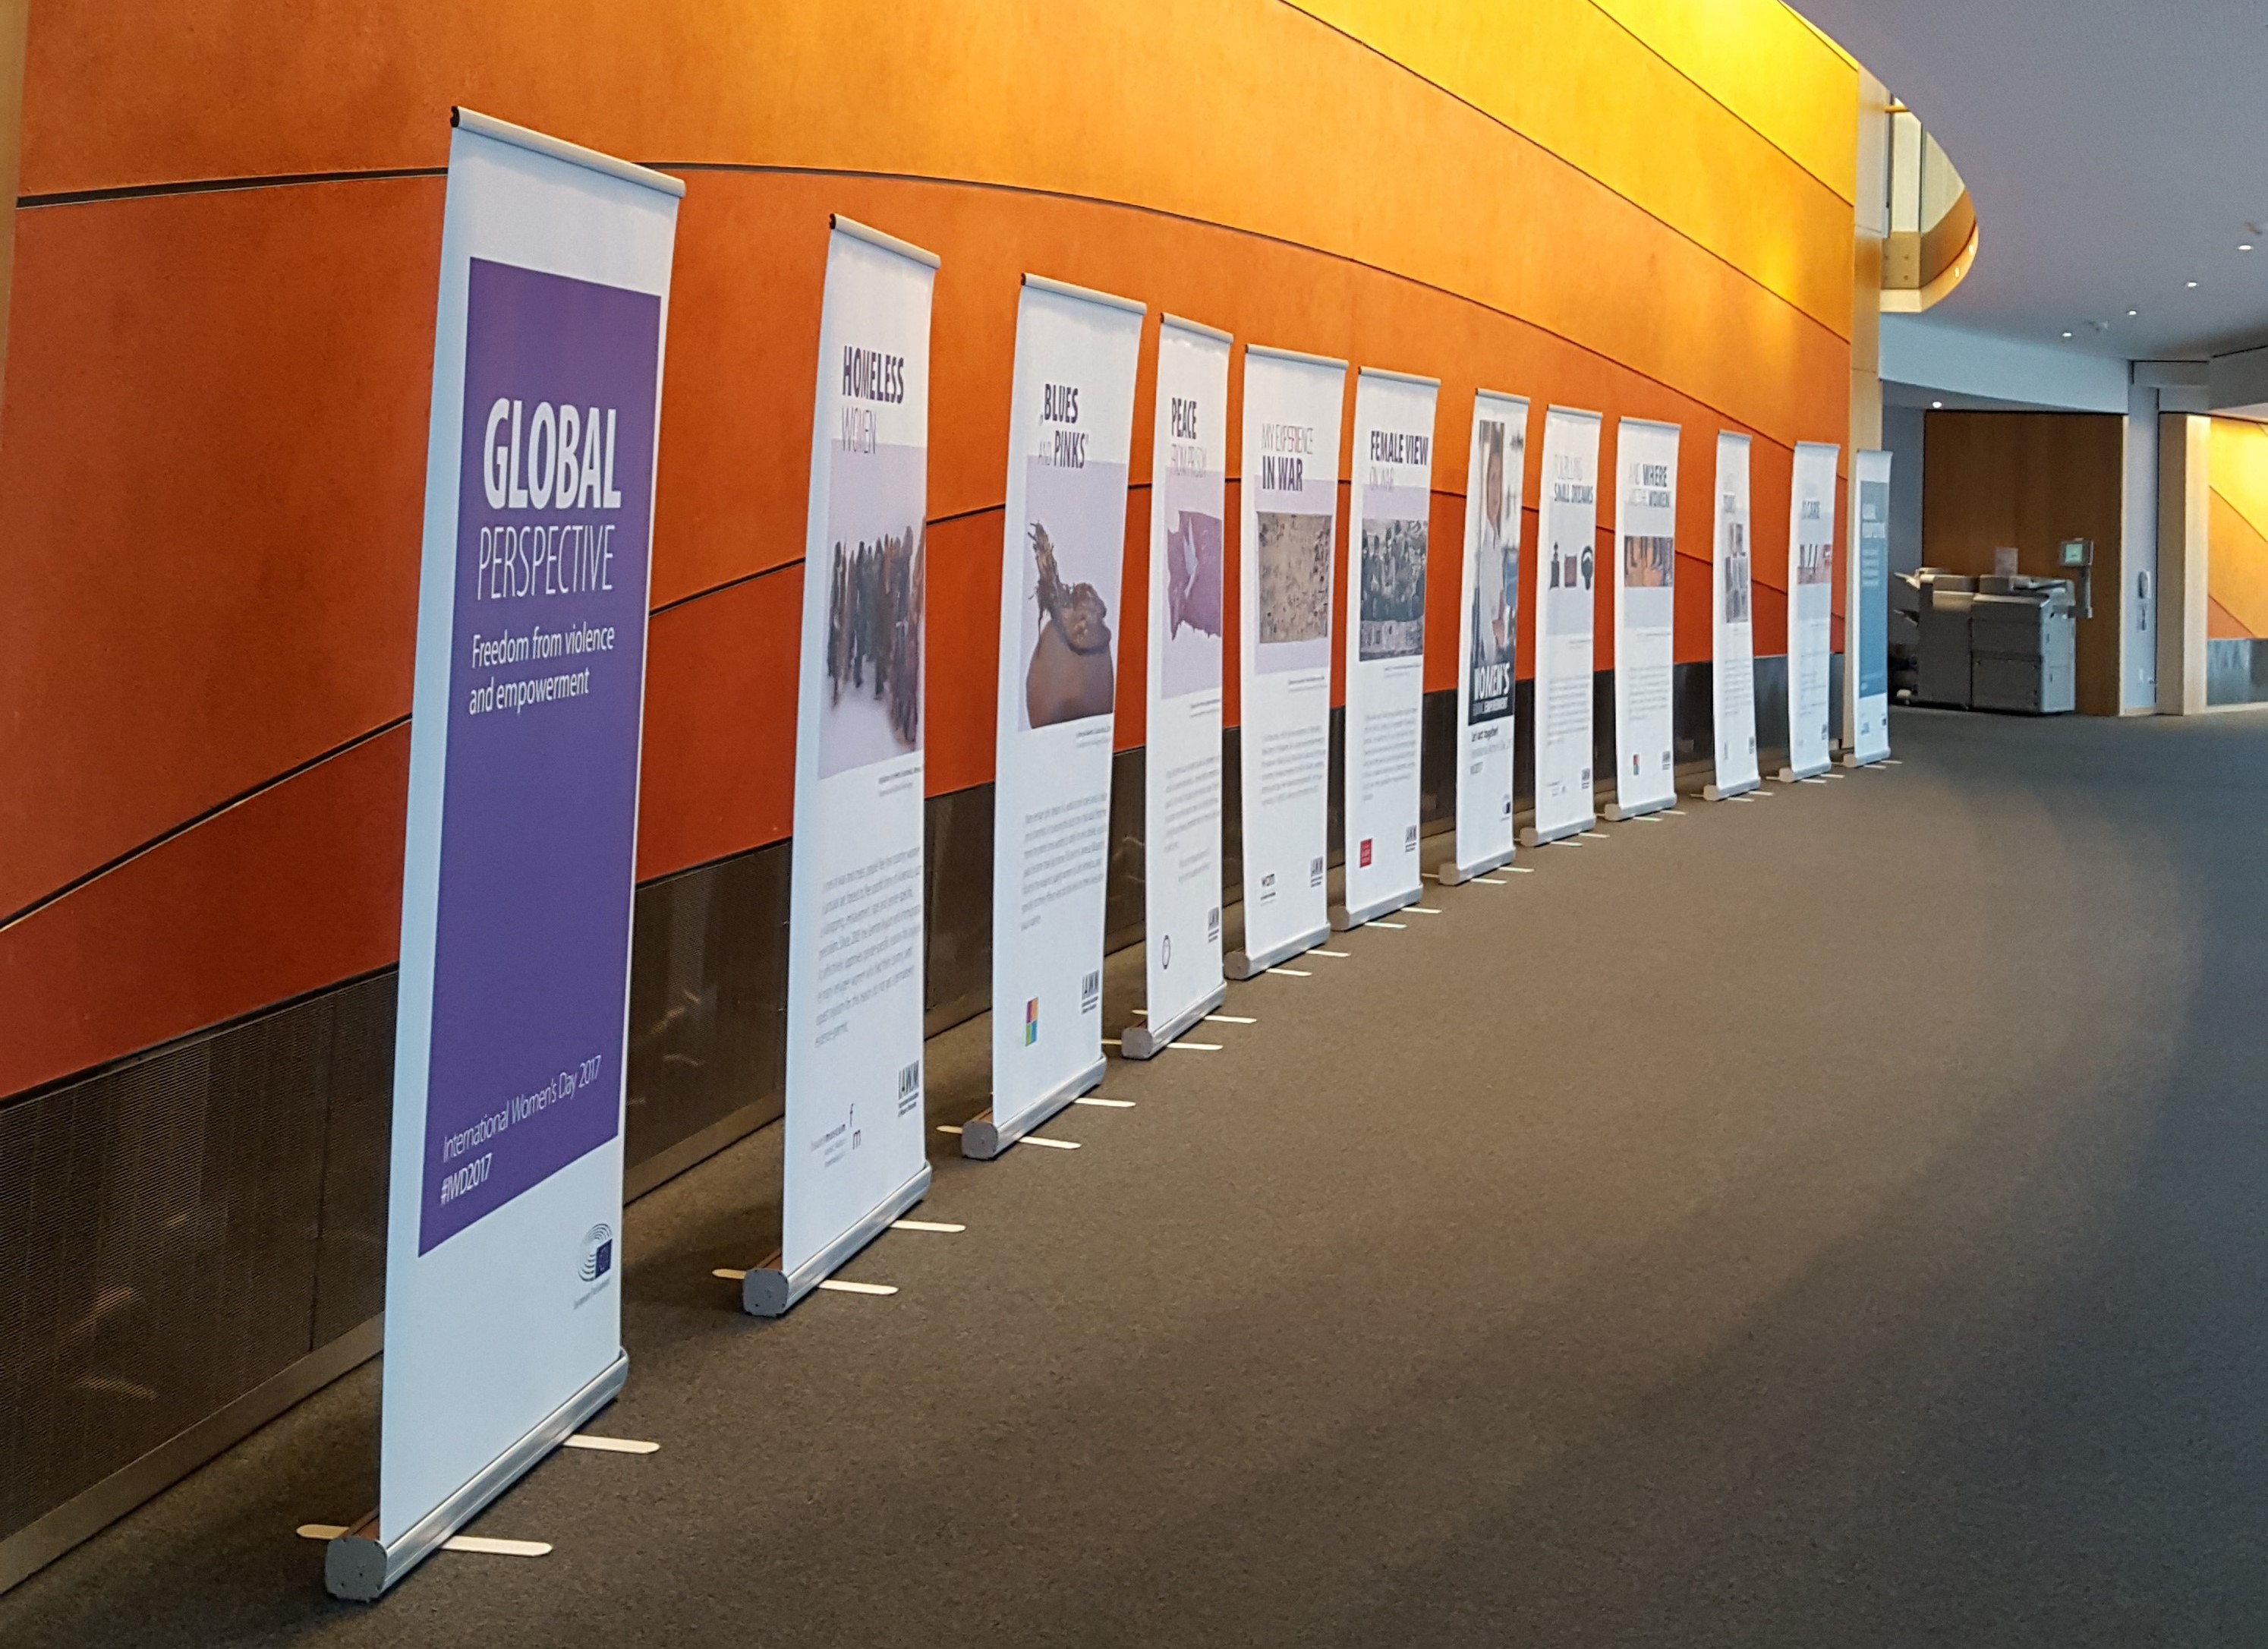 Pop-up banners at the Parliament exhibition